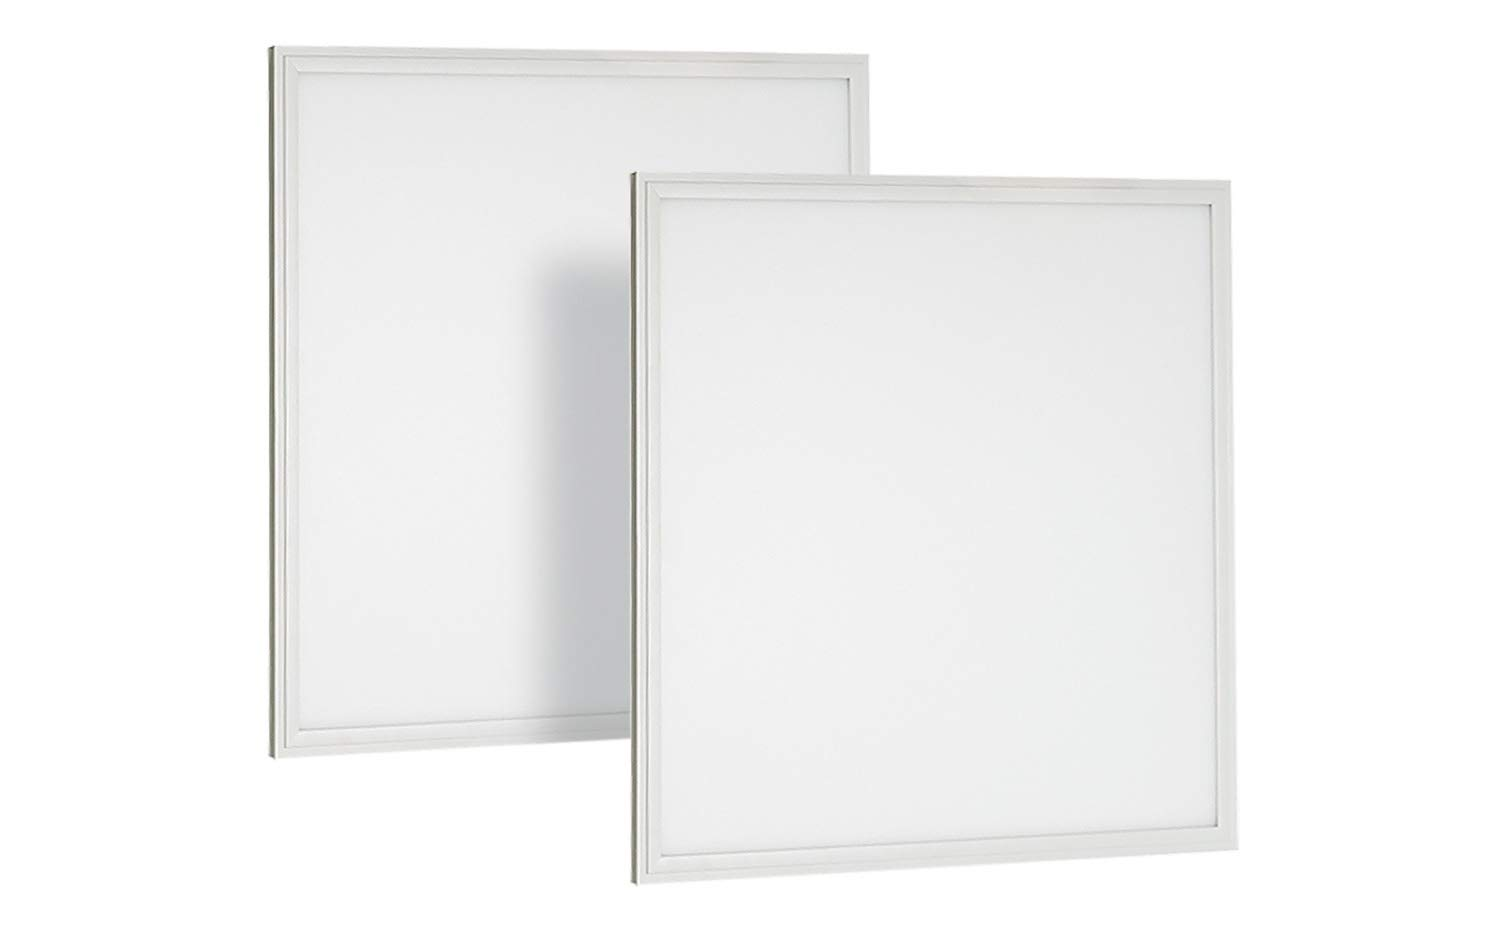 Neox 2x2 FT 27W 5000K Flat LED Troffer Panel Light, 0-10V Dimmable Drop Ceiling Flat Panel, Recessed Edge-Lit Troffer Fixture, 3064m UL & DLC - 2 Pack